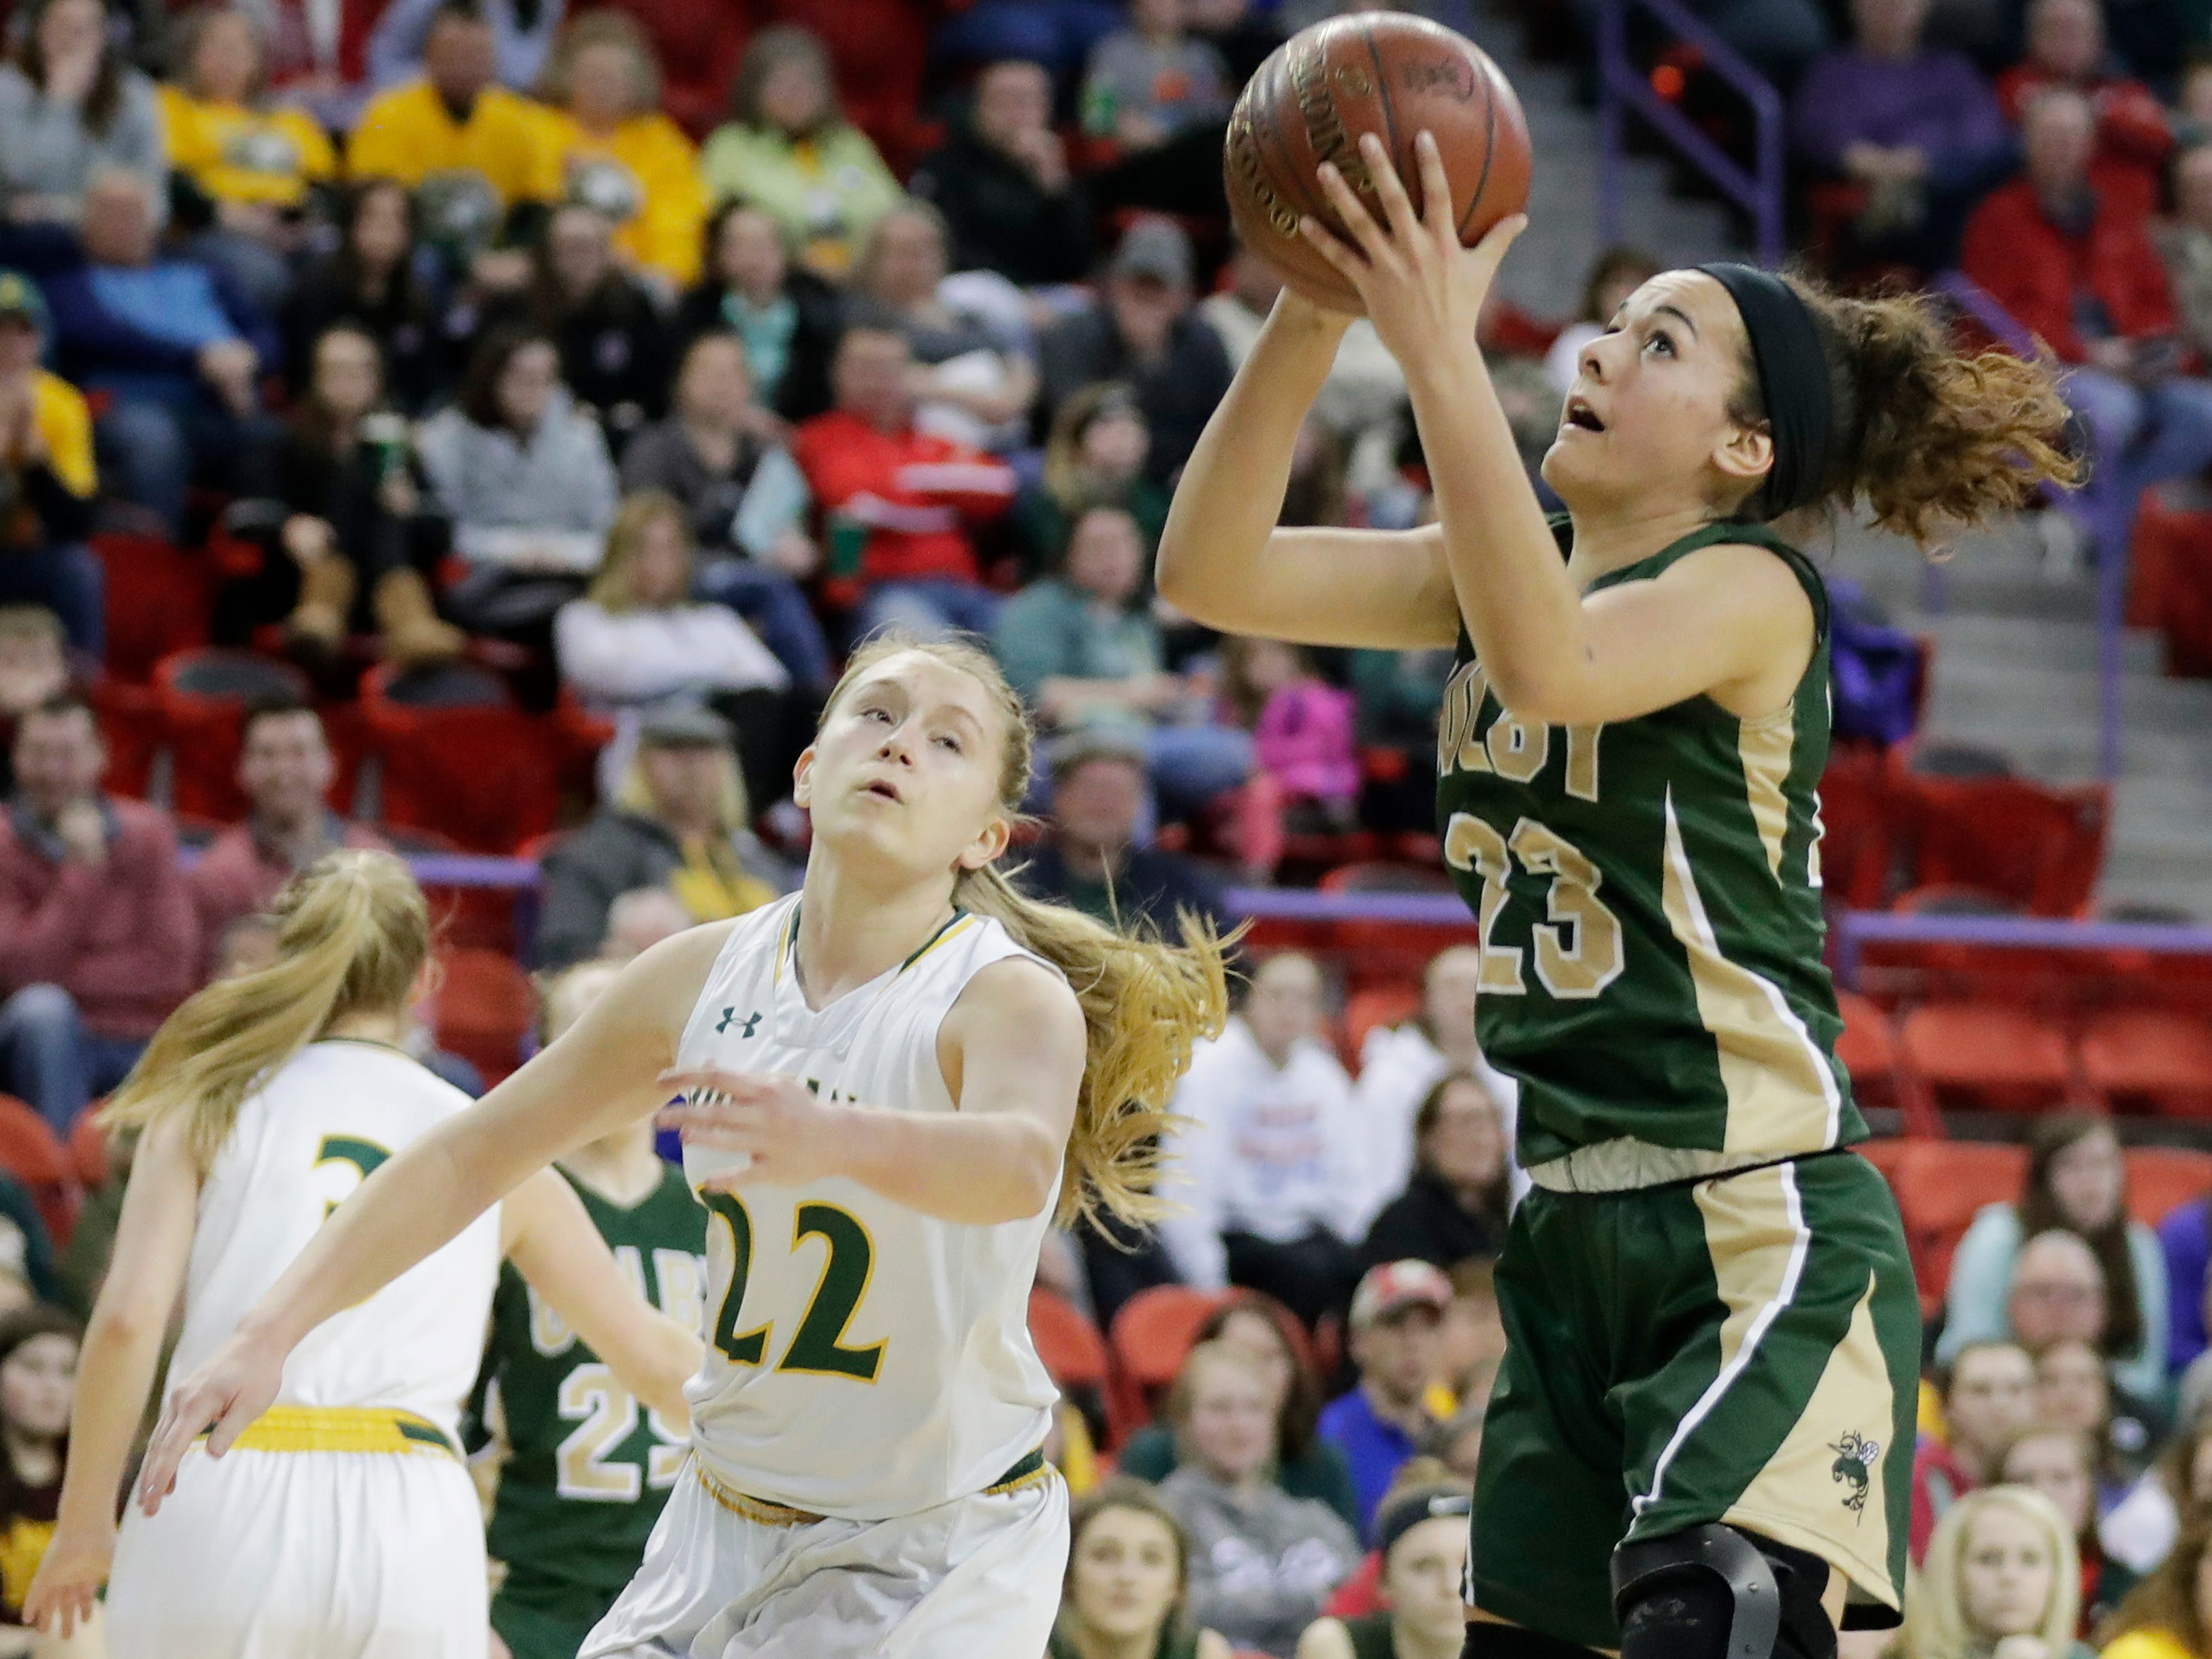 Colby's Vanessa Lopez (23) catches a pass in the paint against Melrose-Mindoro's Erika Simmons (22) in a Division 3 semifinal at the WIAA state girls basketball tournament at the Resch Center on Thursday, March 7, 2019, in Ashwaubenon, Wis.